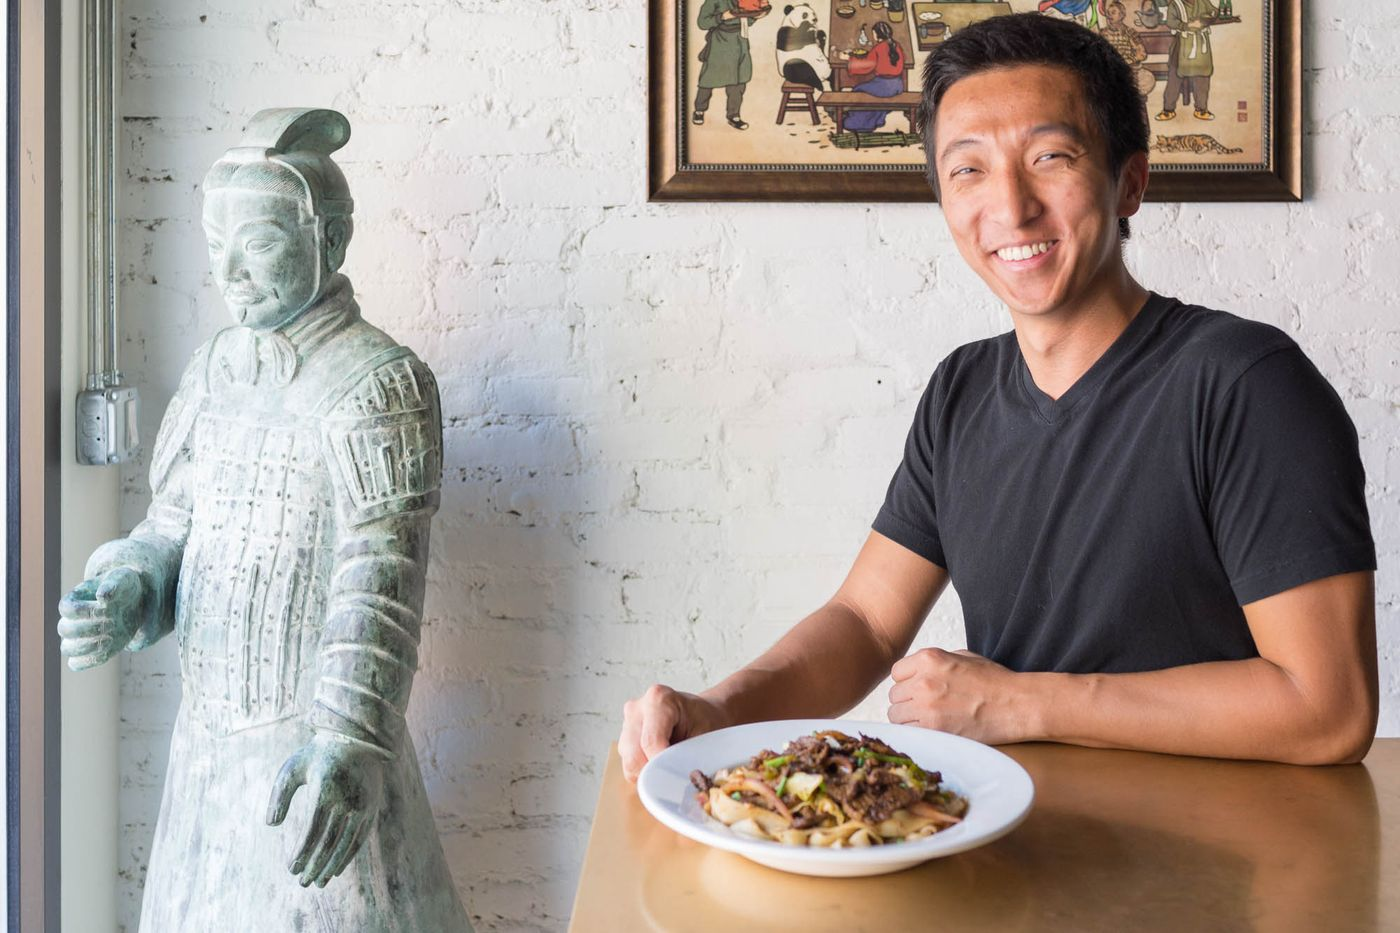 A man in a black v-neck t-shirt sits at a wooden table with a bowl of noodles in front of him. White brick is in the background.